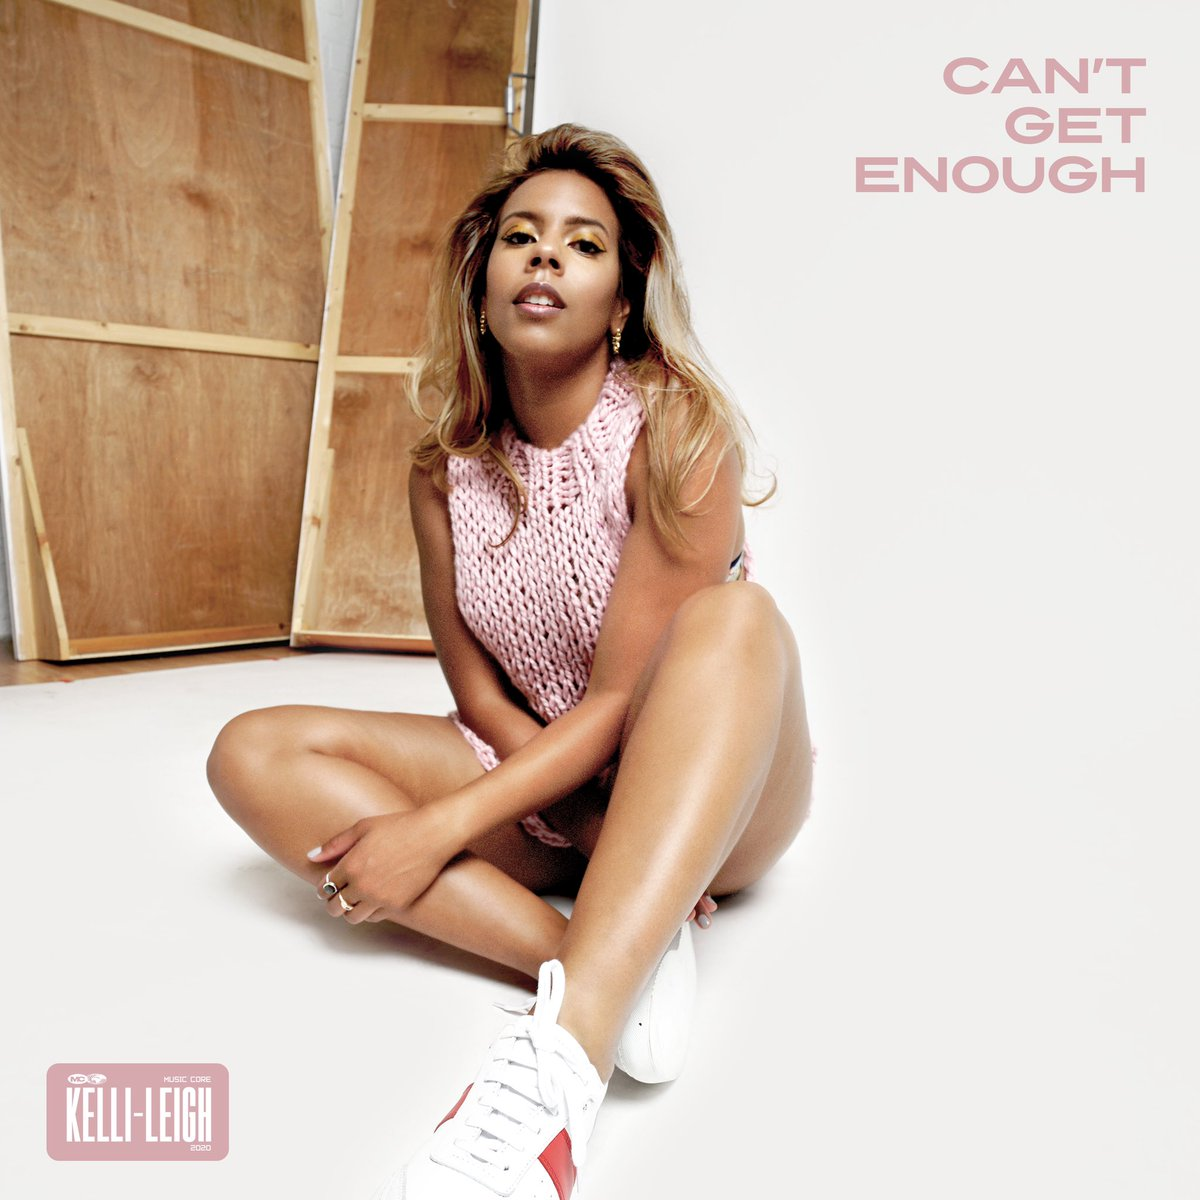 Can't Get Enough EP  September 18th 💗 Pre-Save 🖇  https://t.co/wnF6KGIZTI https://t.co/TFqJ794QrS